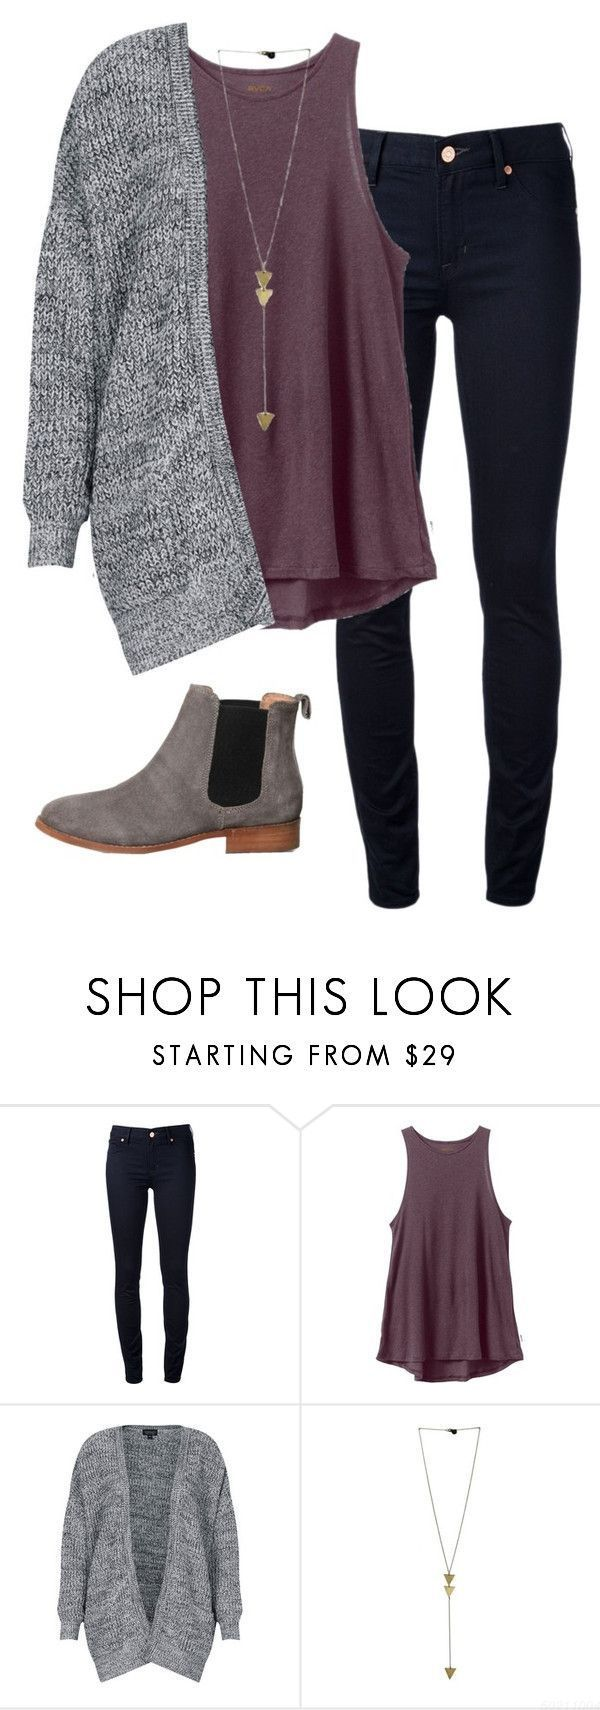 Winter Outfits   Winter Fashion   Winter Coats   Winter Boots. Find the best original fashionable breakthroughs, cold weather coats, new footwear, new knitwear, office outfits, and winter season clothing tips for the autumn and winter time of year. From natural leather and tweed, the essential designs to have on your own radar right now. One can remain really snug and be ultra-hot when the freezing cold settles back in. Winter Fashion Accessories. 17923632 Fall And Winter Outfits 2016. Winter